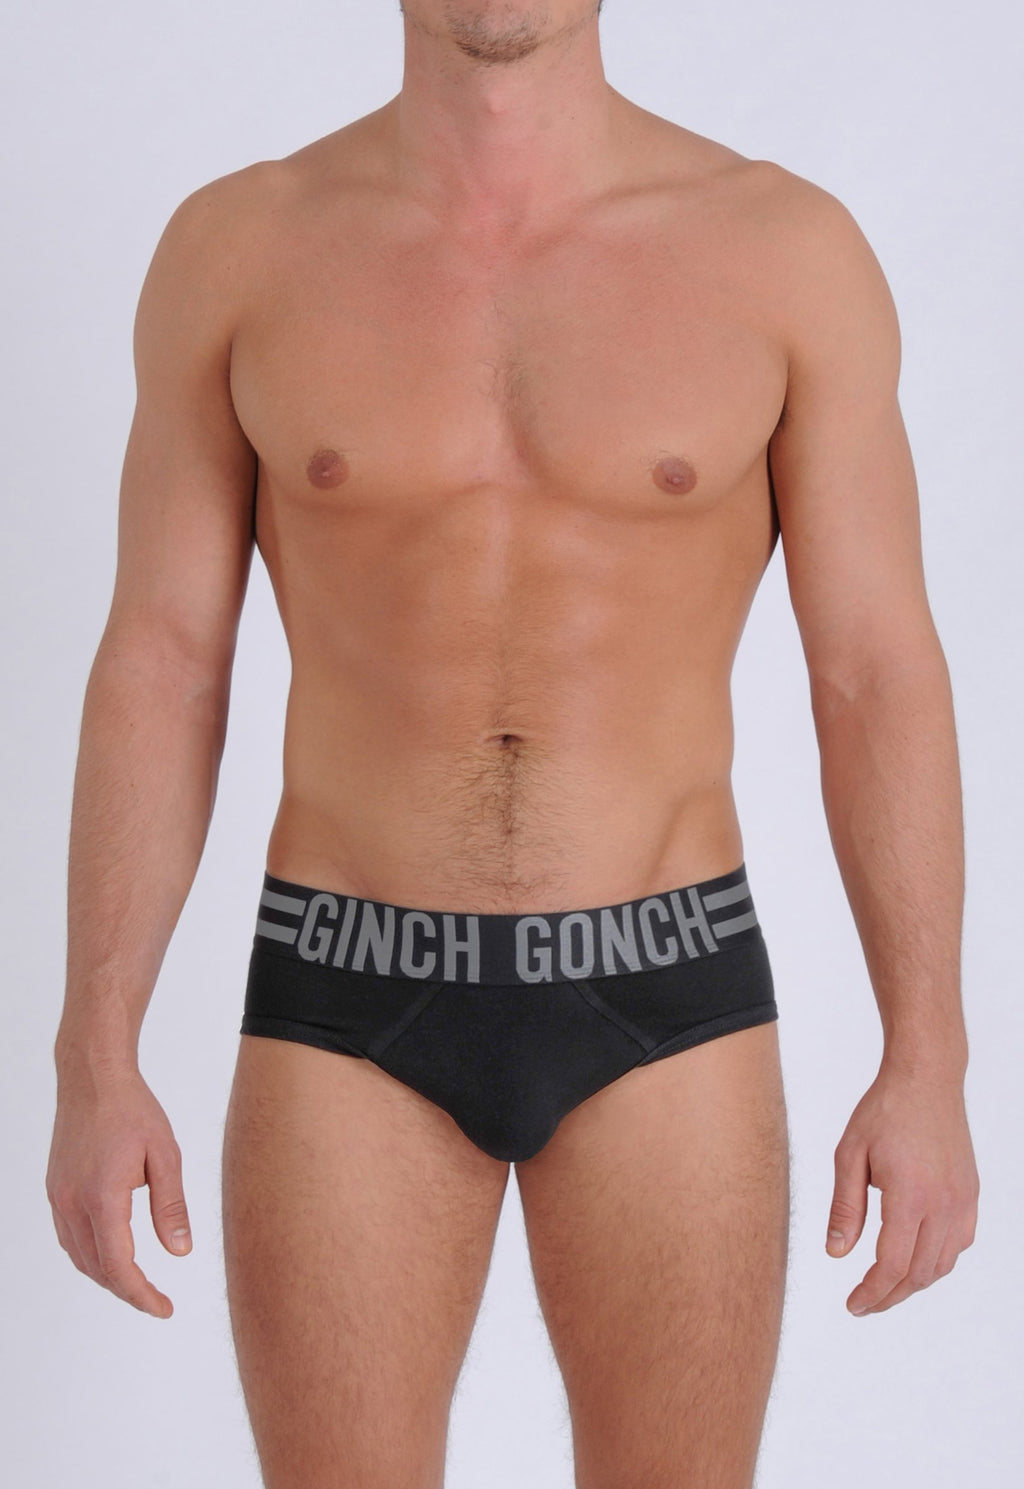 Ginch Gonch Men's Signature Series Underwear - Low Rise Brief Black thick waistband front